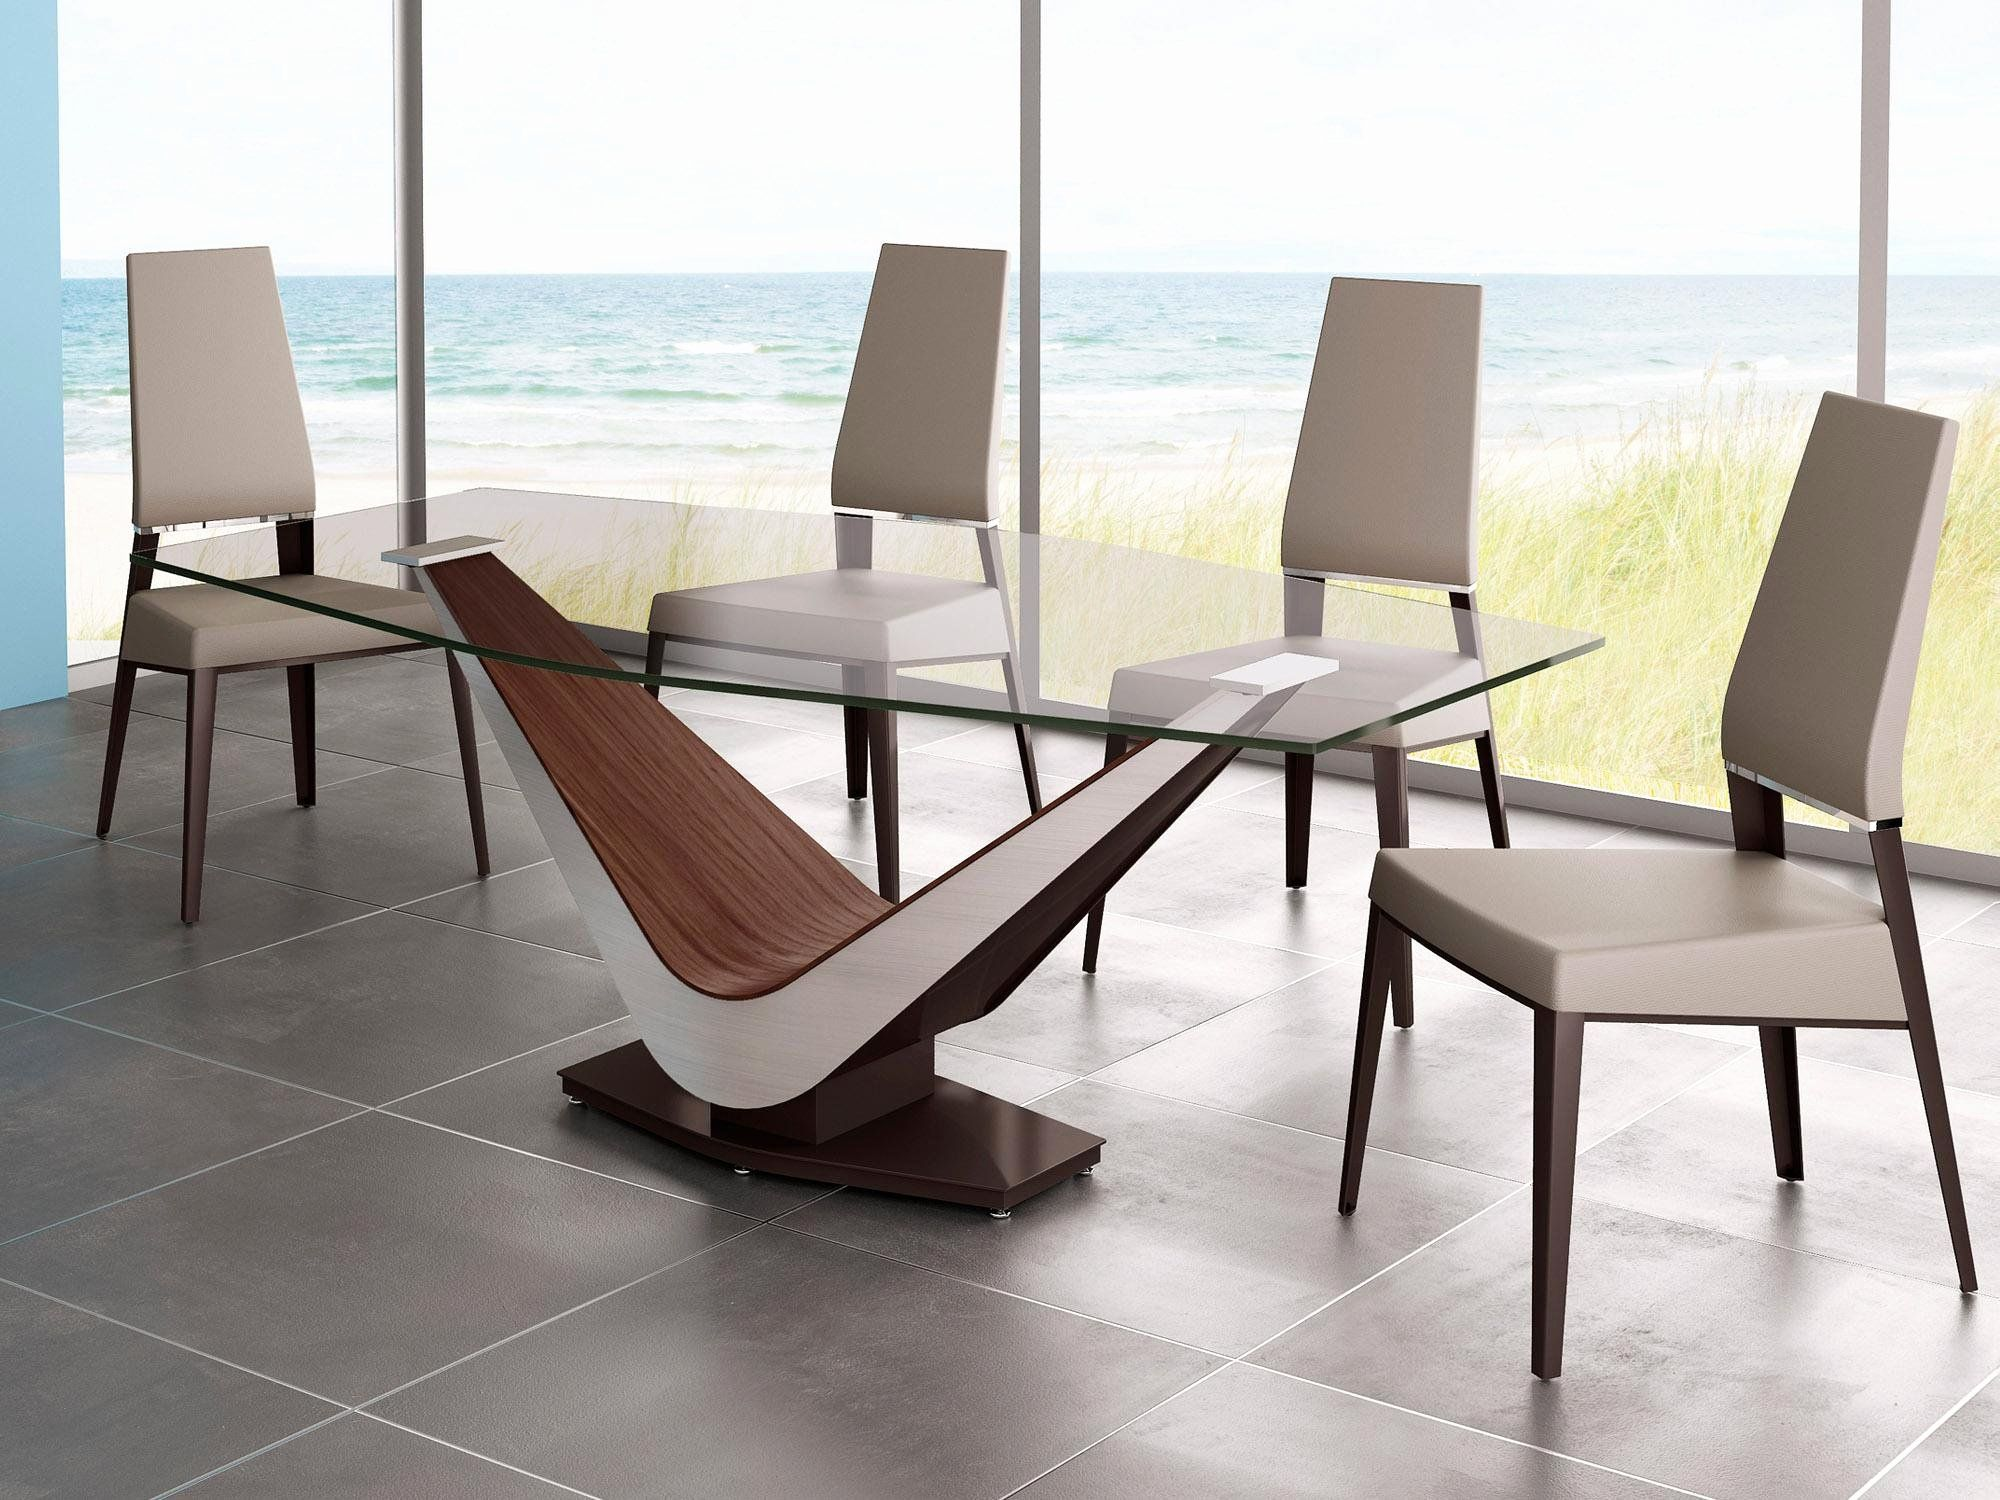 Glass Dining Room Table Bases New Ideas To Make Table Base For